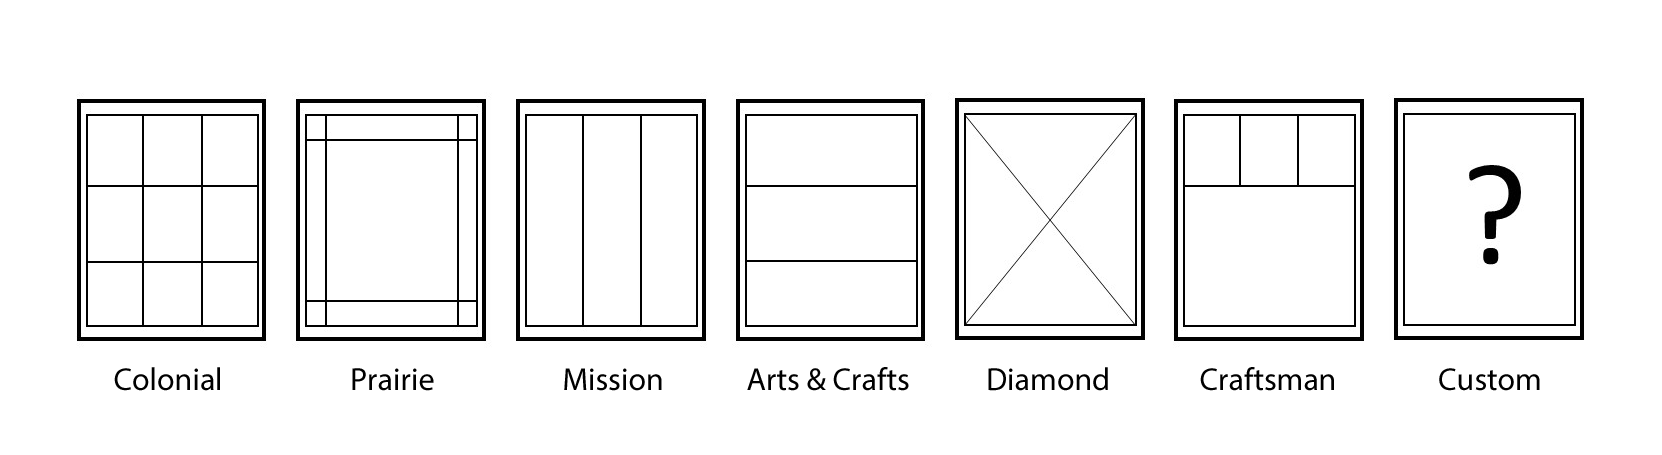 Windows grid styles: Colonial, Prairie, Mission, Arts & Crafts, Diamond, Craftsman, Custom